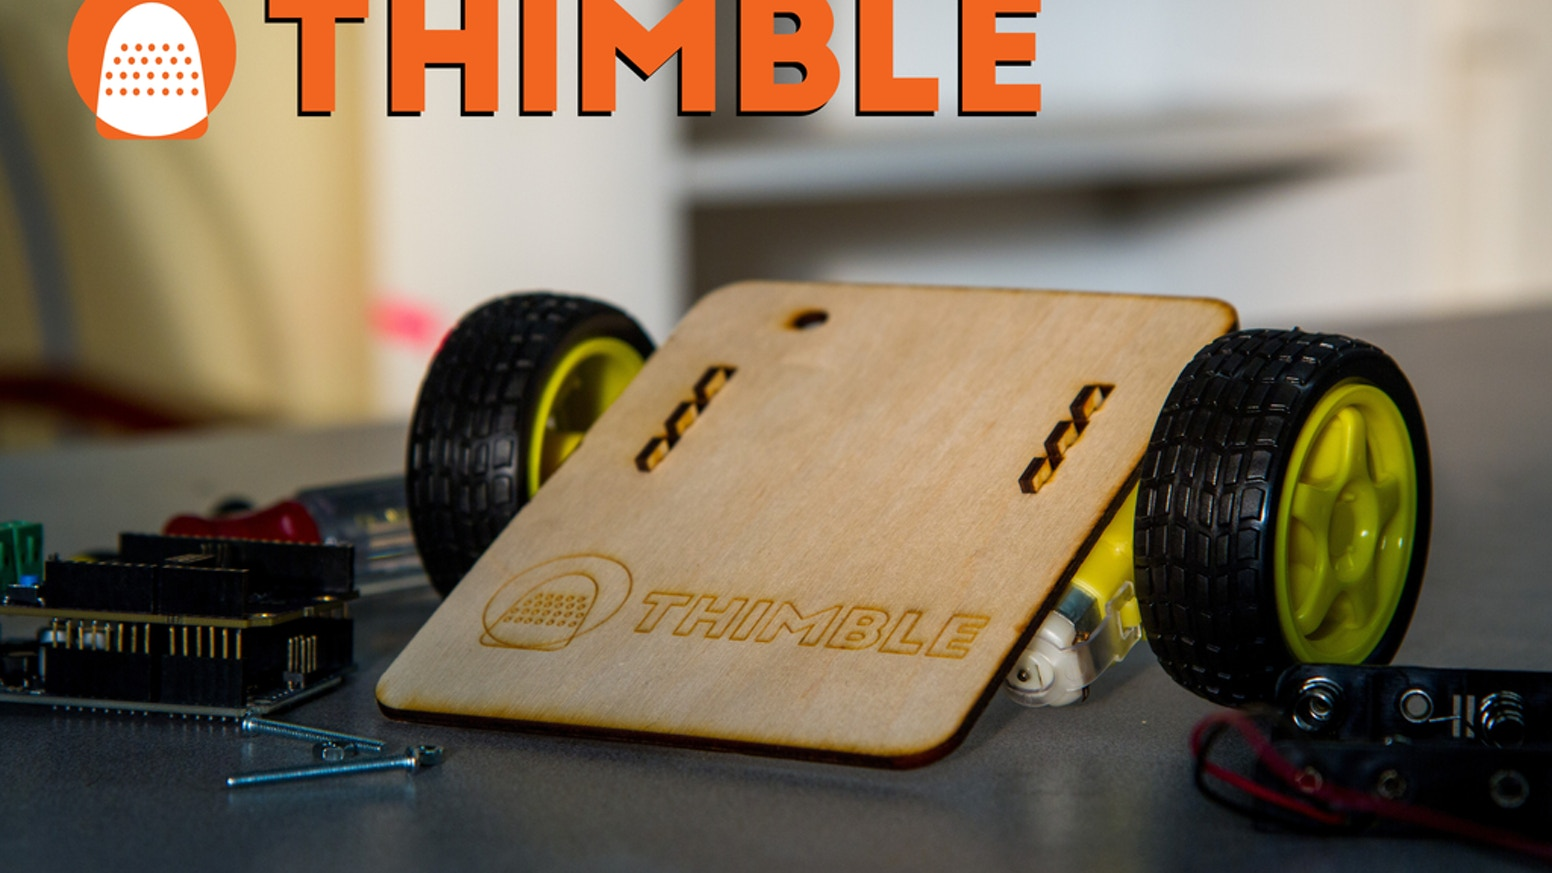 Create fun, electronic devices each month with guided tutorials and helpful community; first kit includes parts to build a wifi robot. (Thimble.io not affiliated with Thimble by Mozilla.)